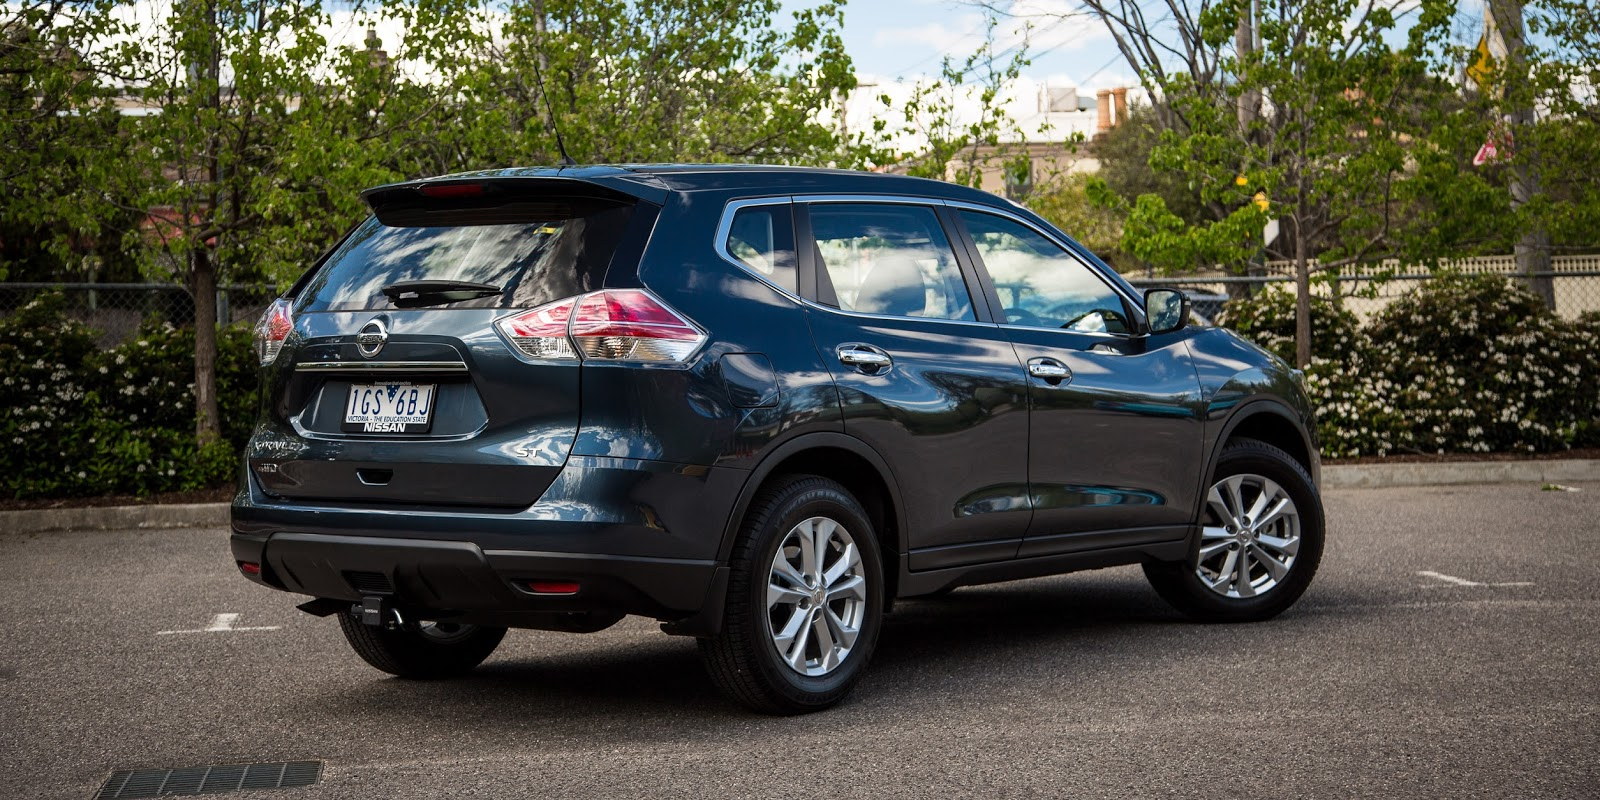 An-toan-dinh-cao-voi-nissan-x-trail-4